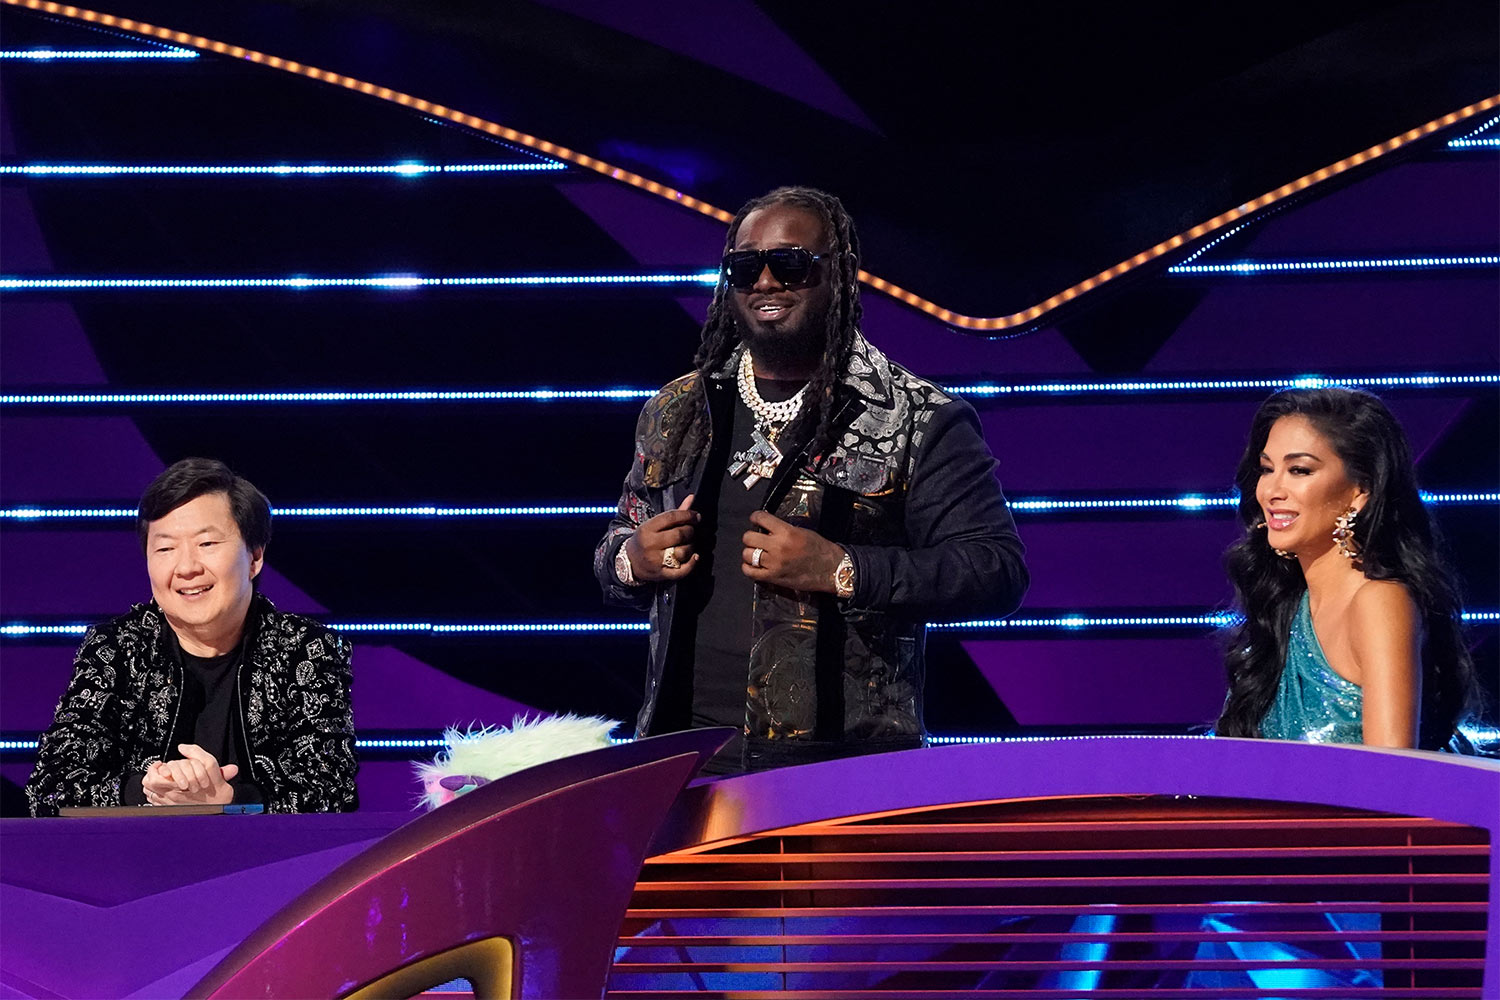 THE MASKED SINGER - T PAIN